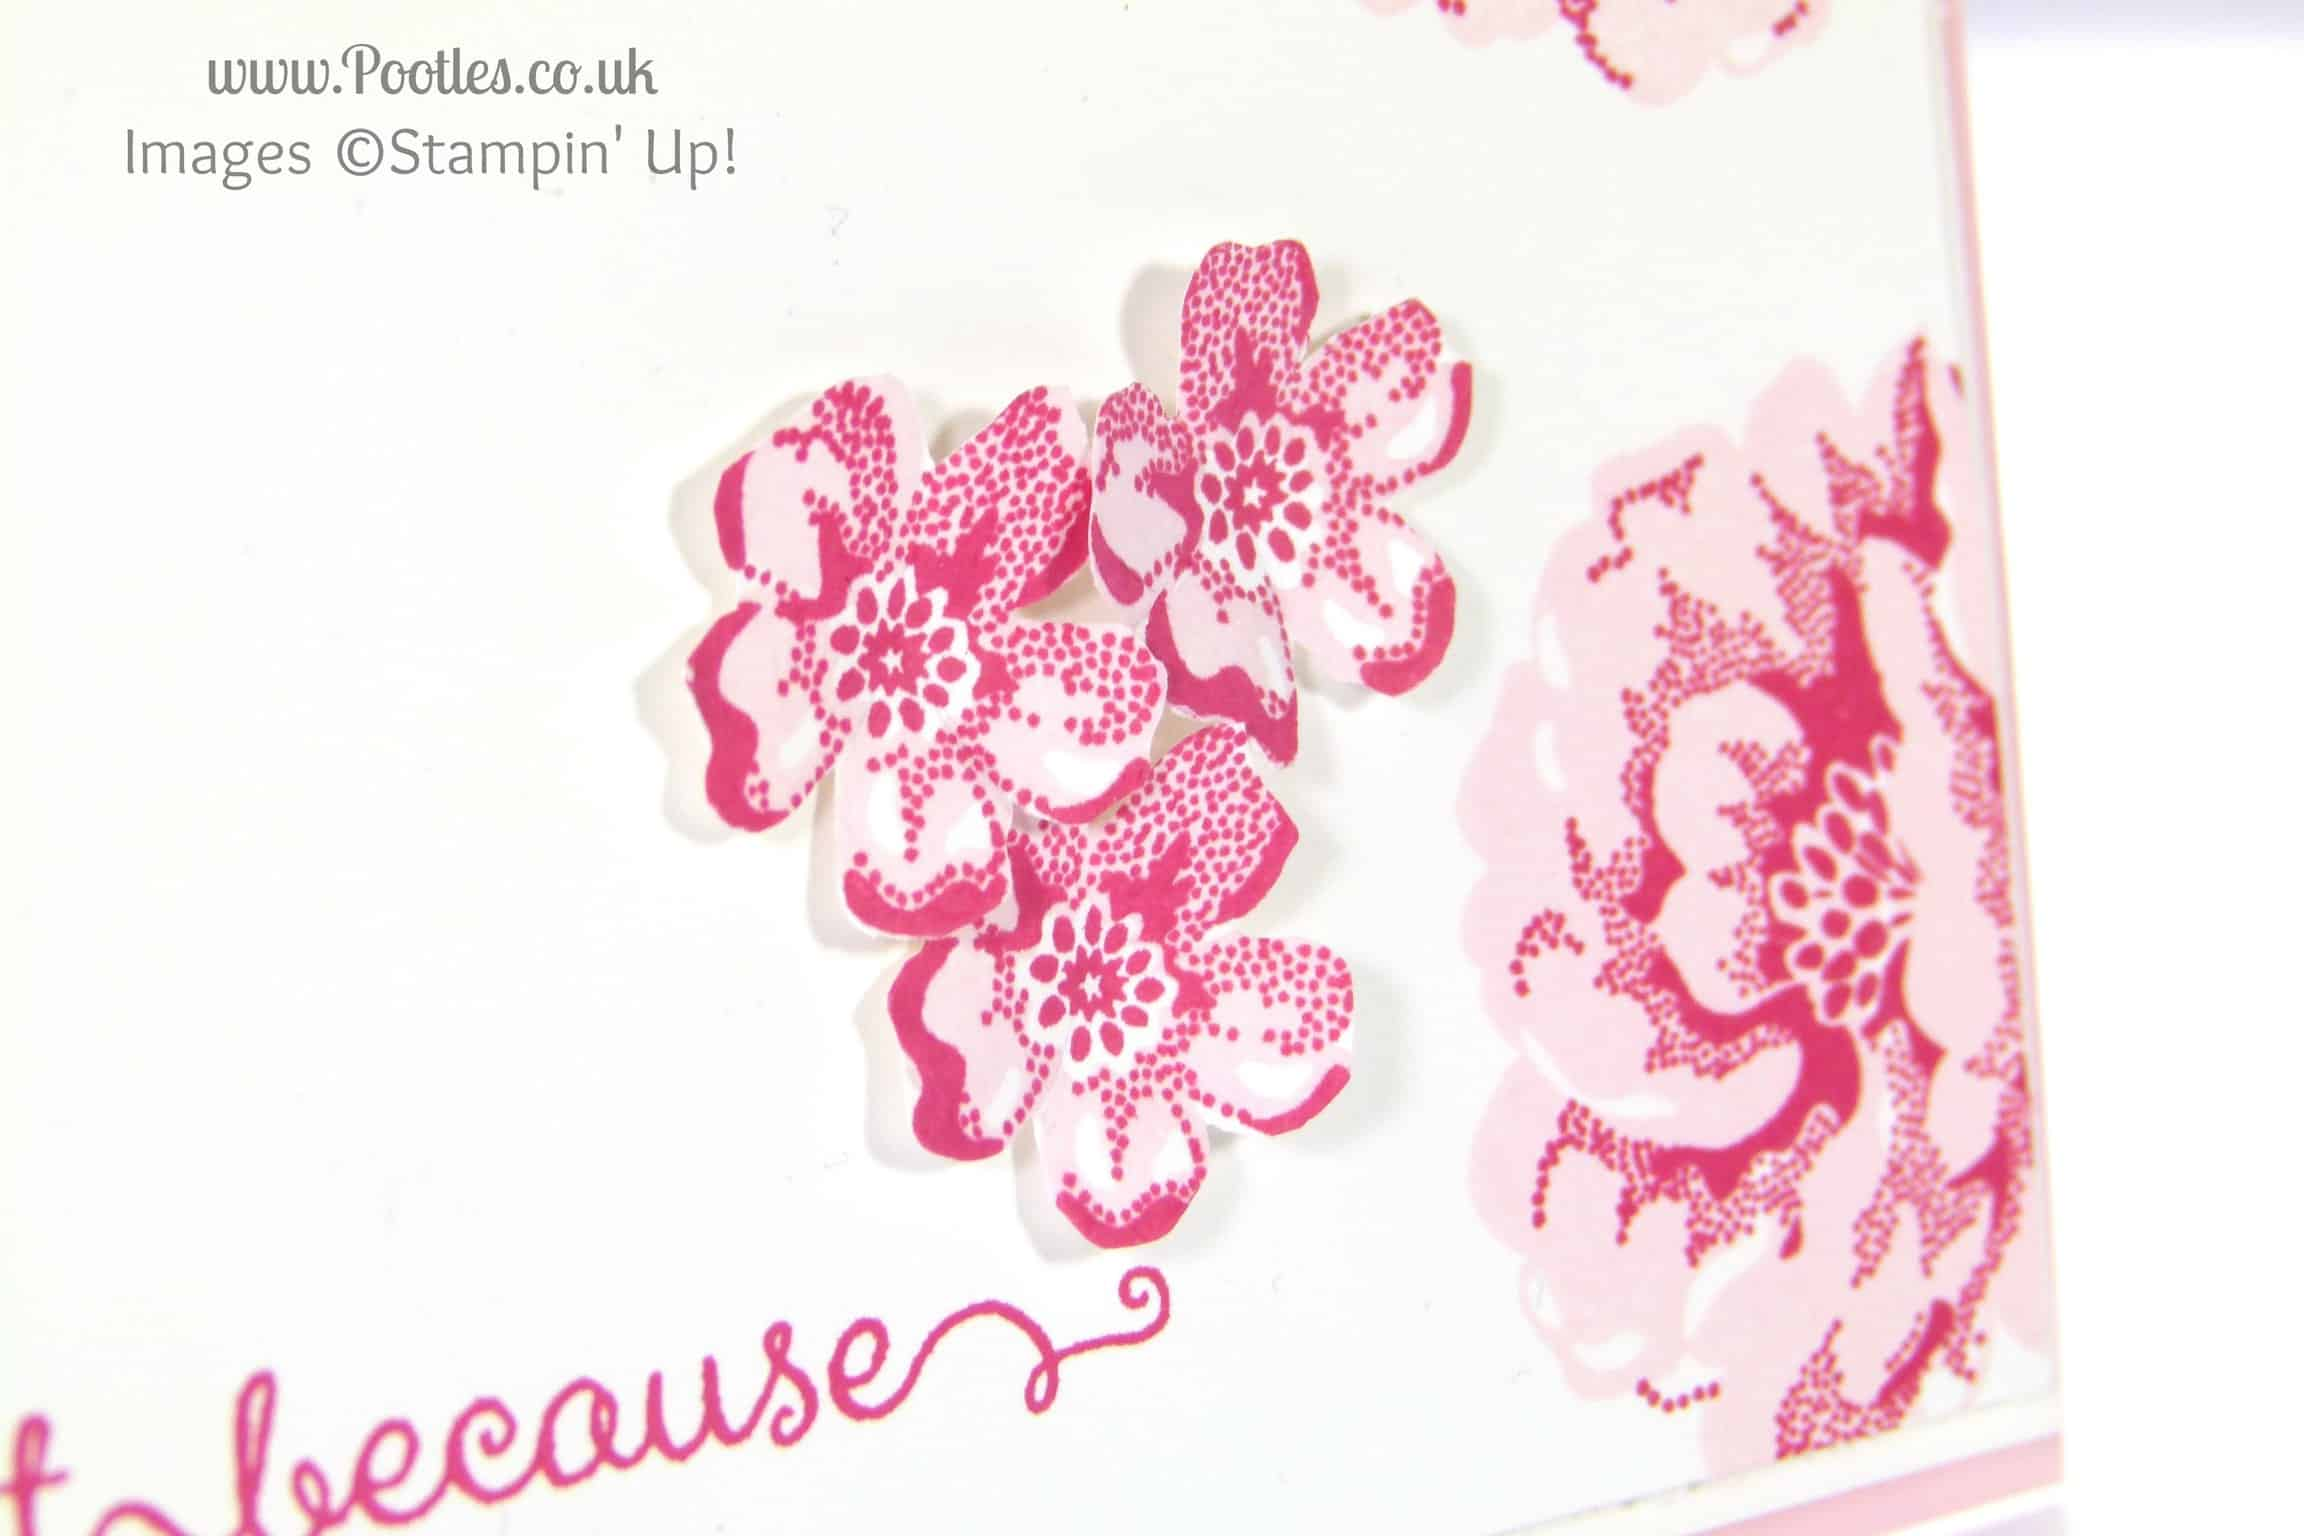 Stampin' Up! UK Independent Demonstrator Pootles - Floral Handmade Card using Stampin' Up! Stippled Blossoms fussy cutting details